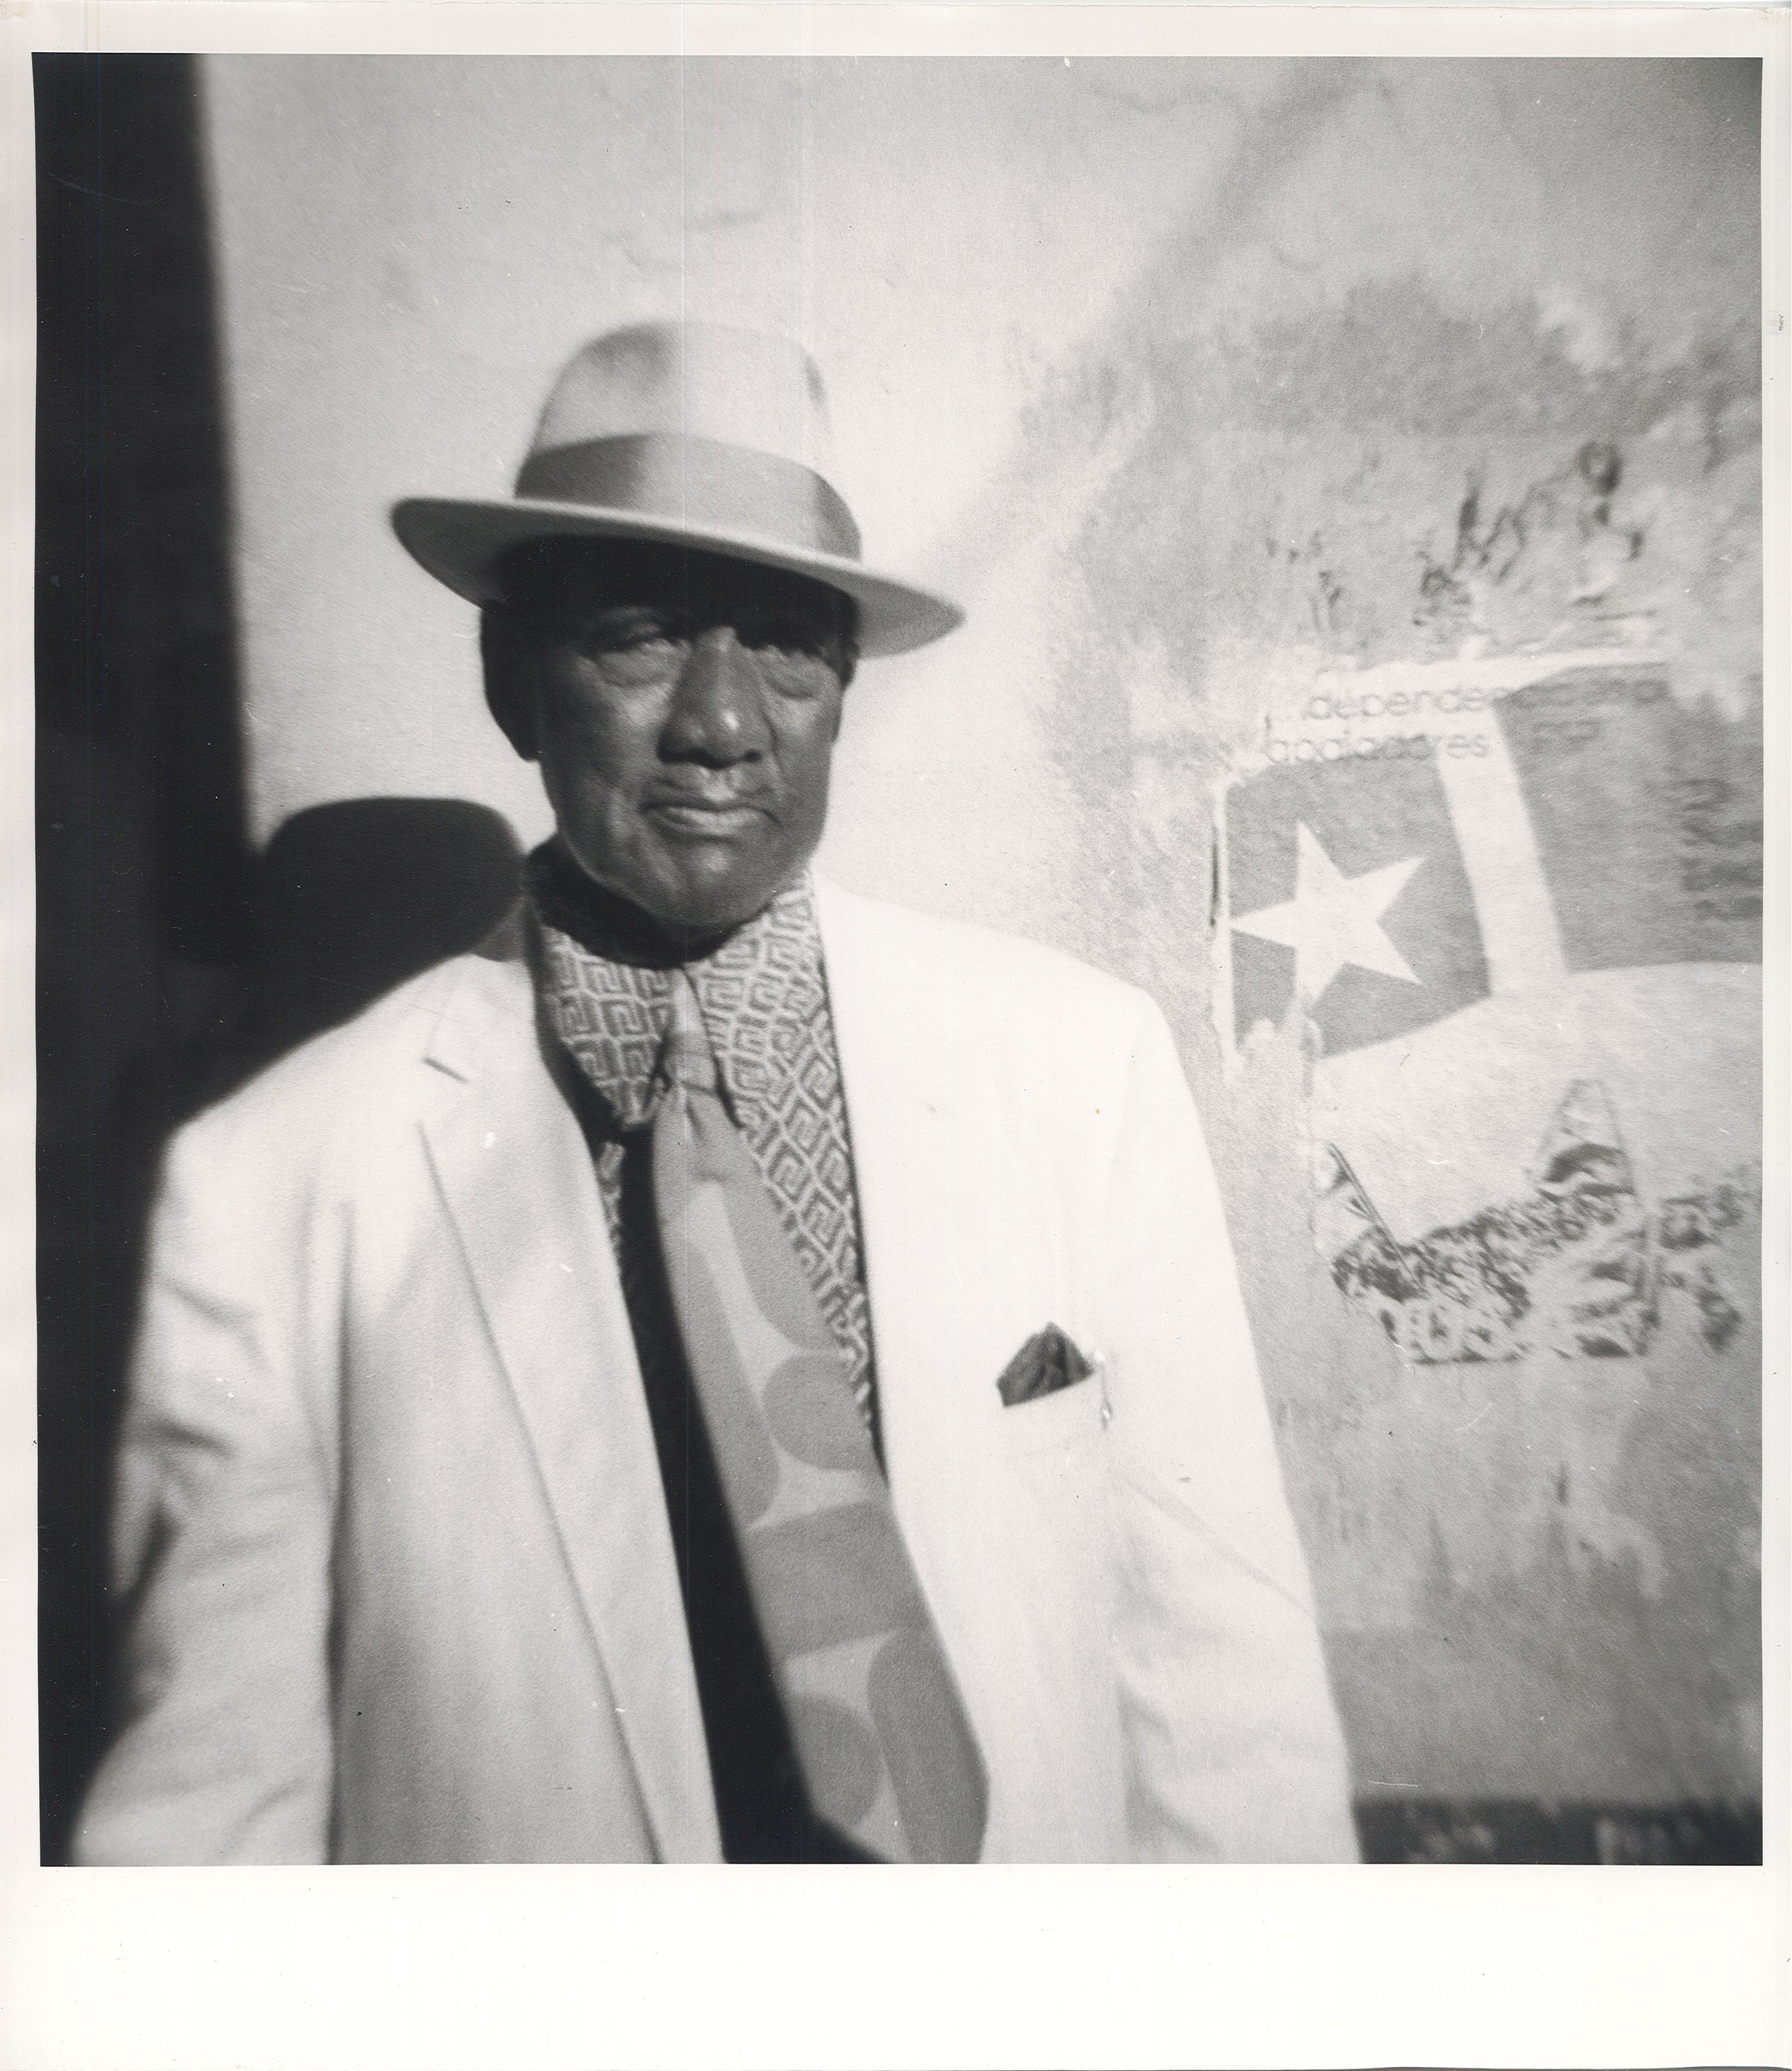 An older man in a fedora, suit and tie